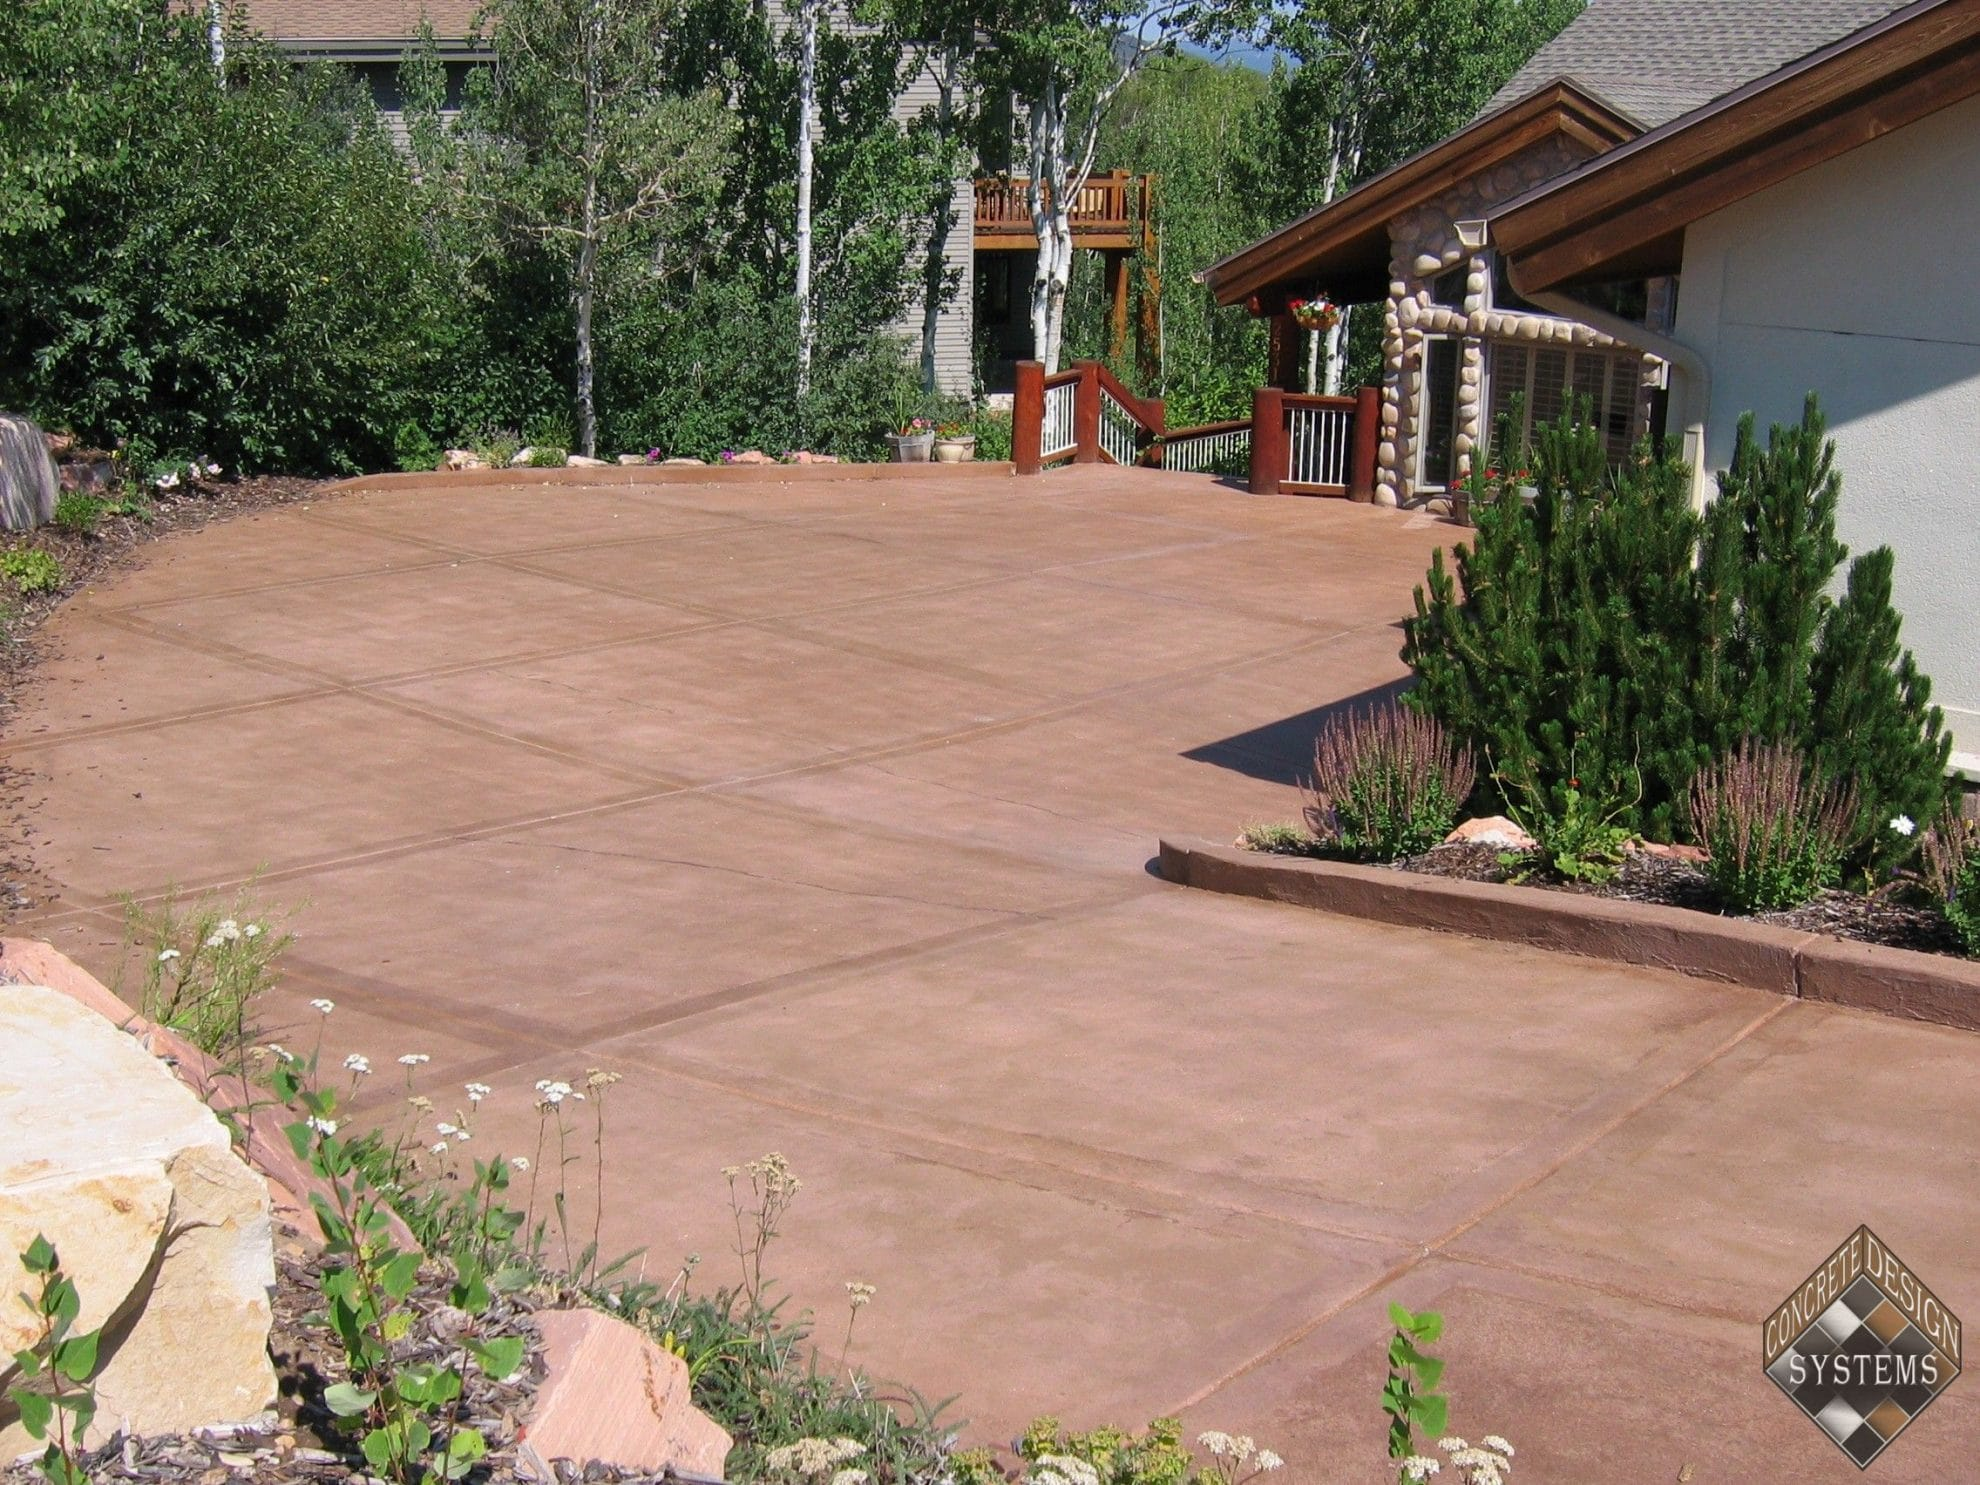 Driveway Acid Stained Concrete Design Systems Salt